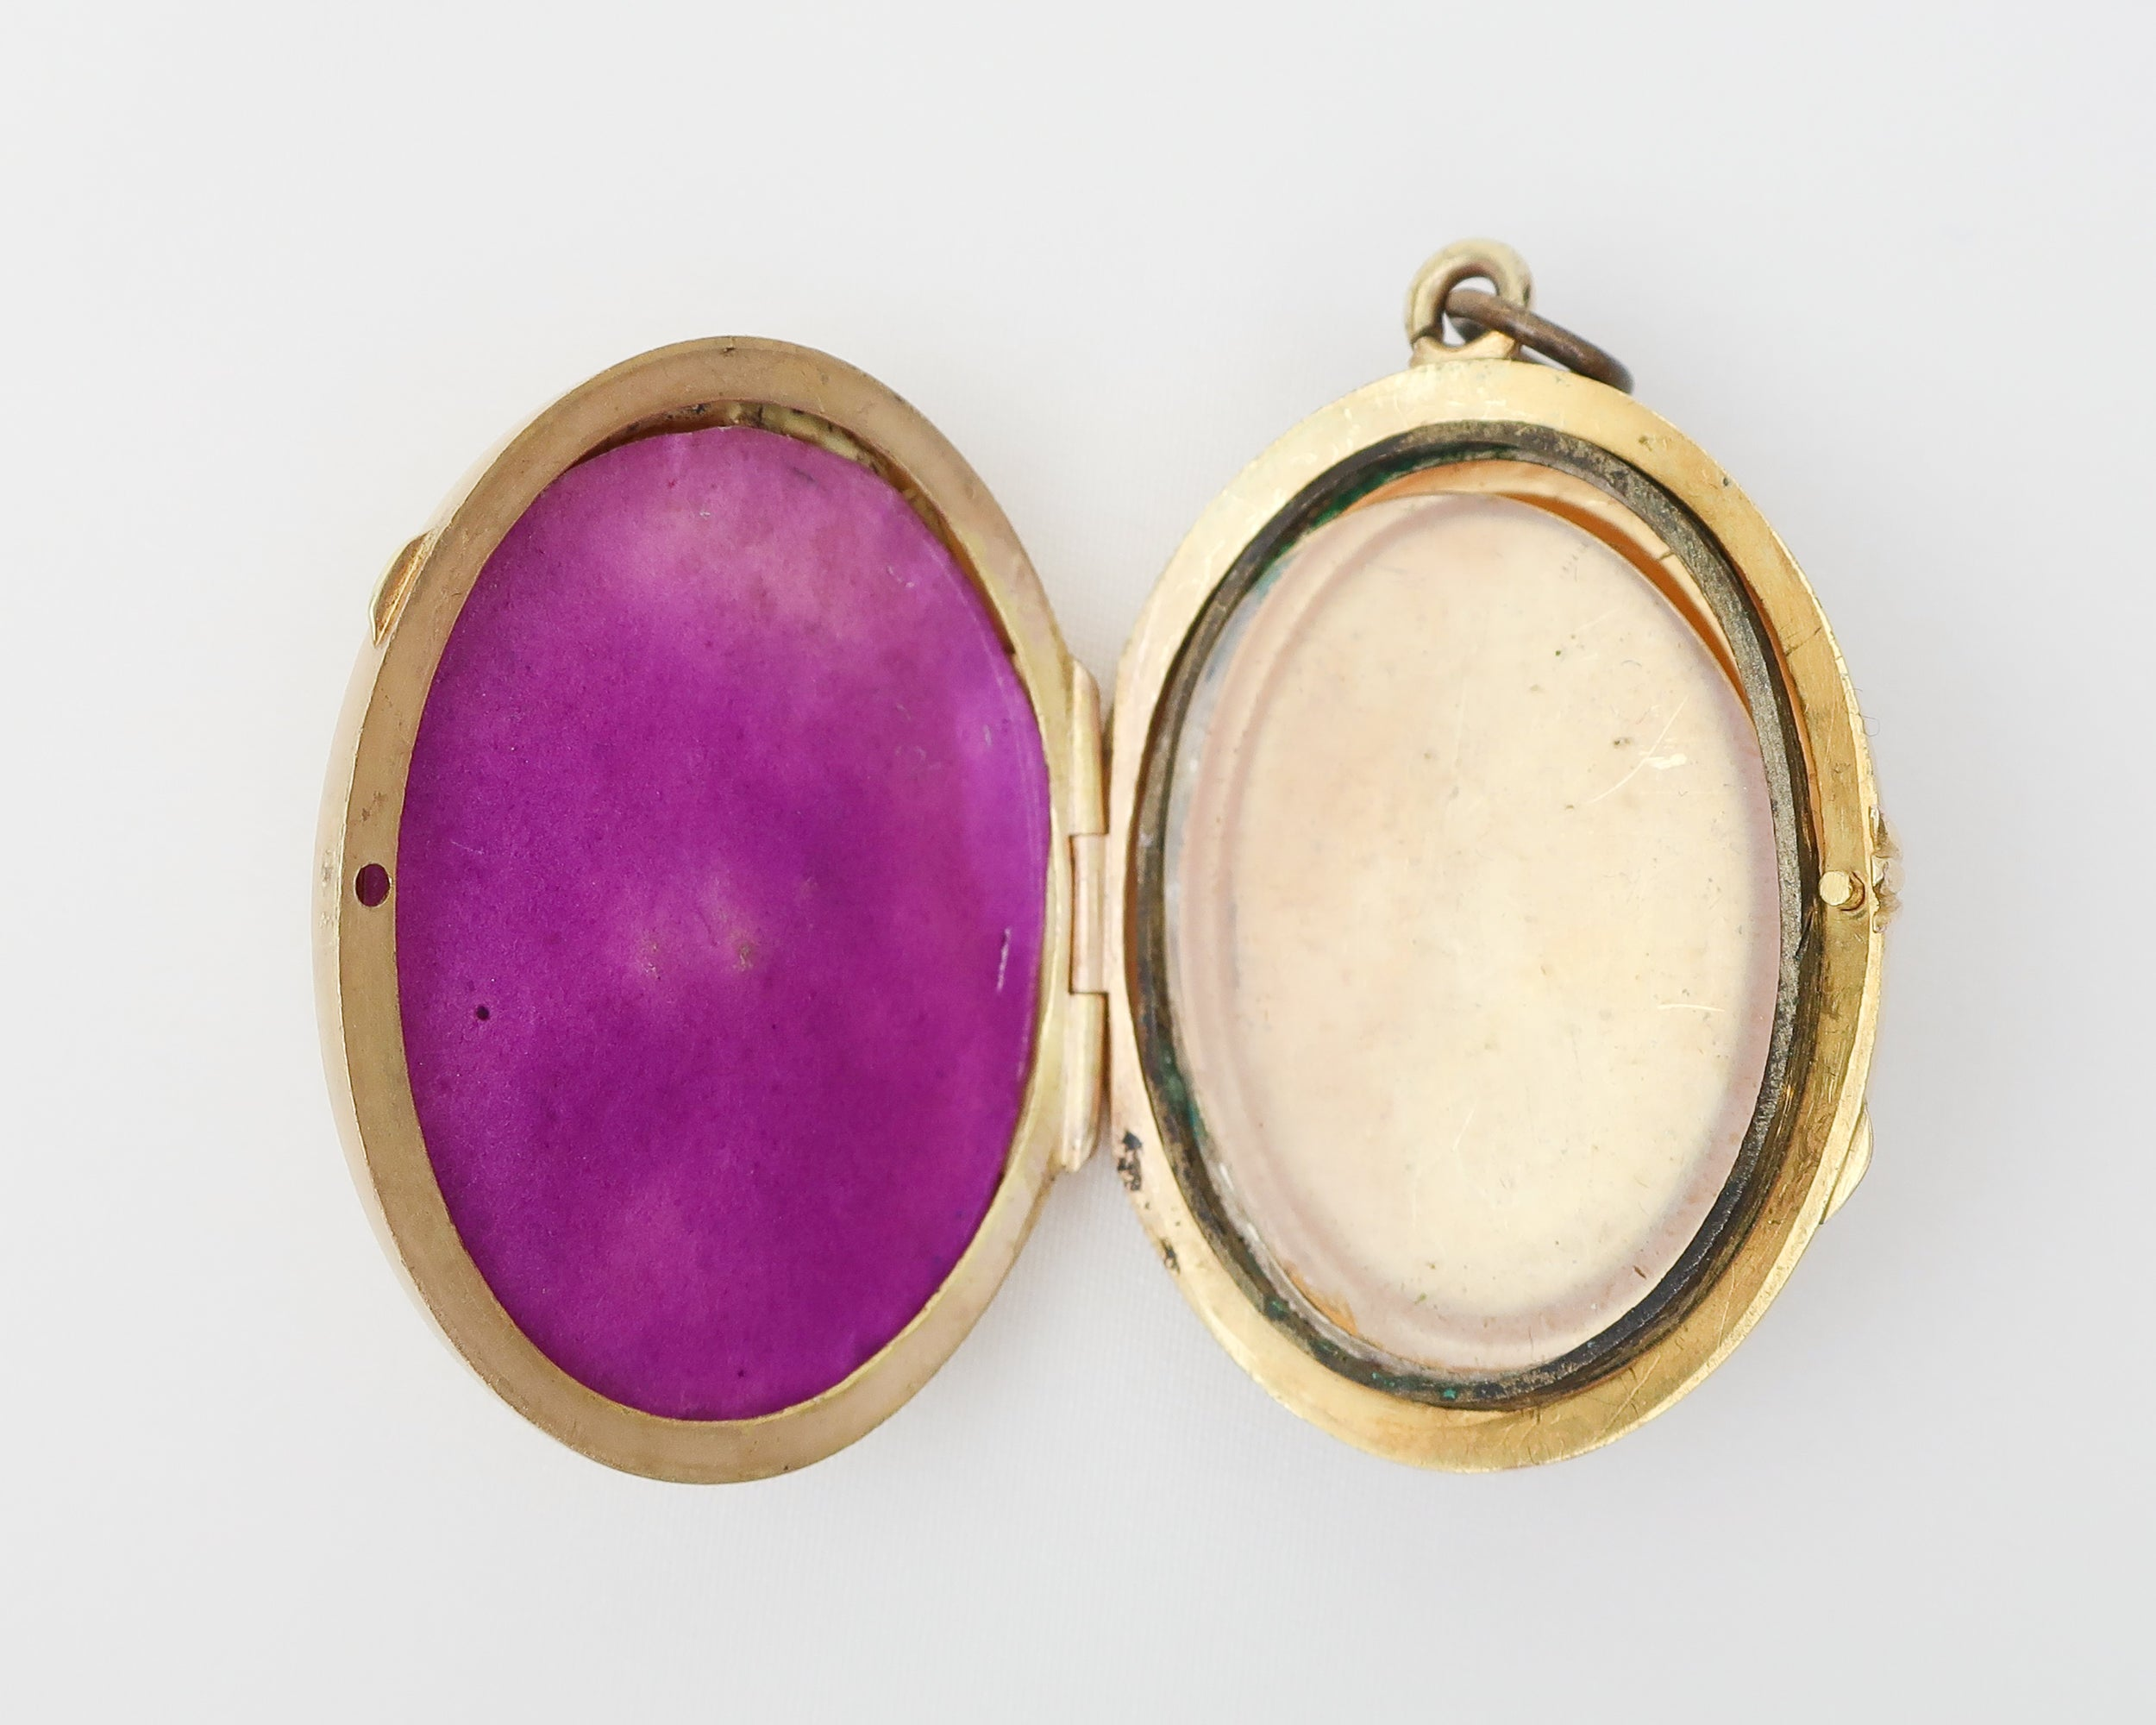 Victorian Gold-Bearing Quartz & Agate Locket